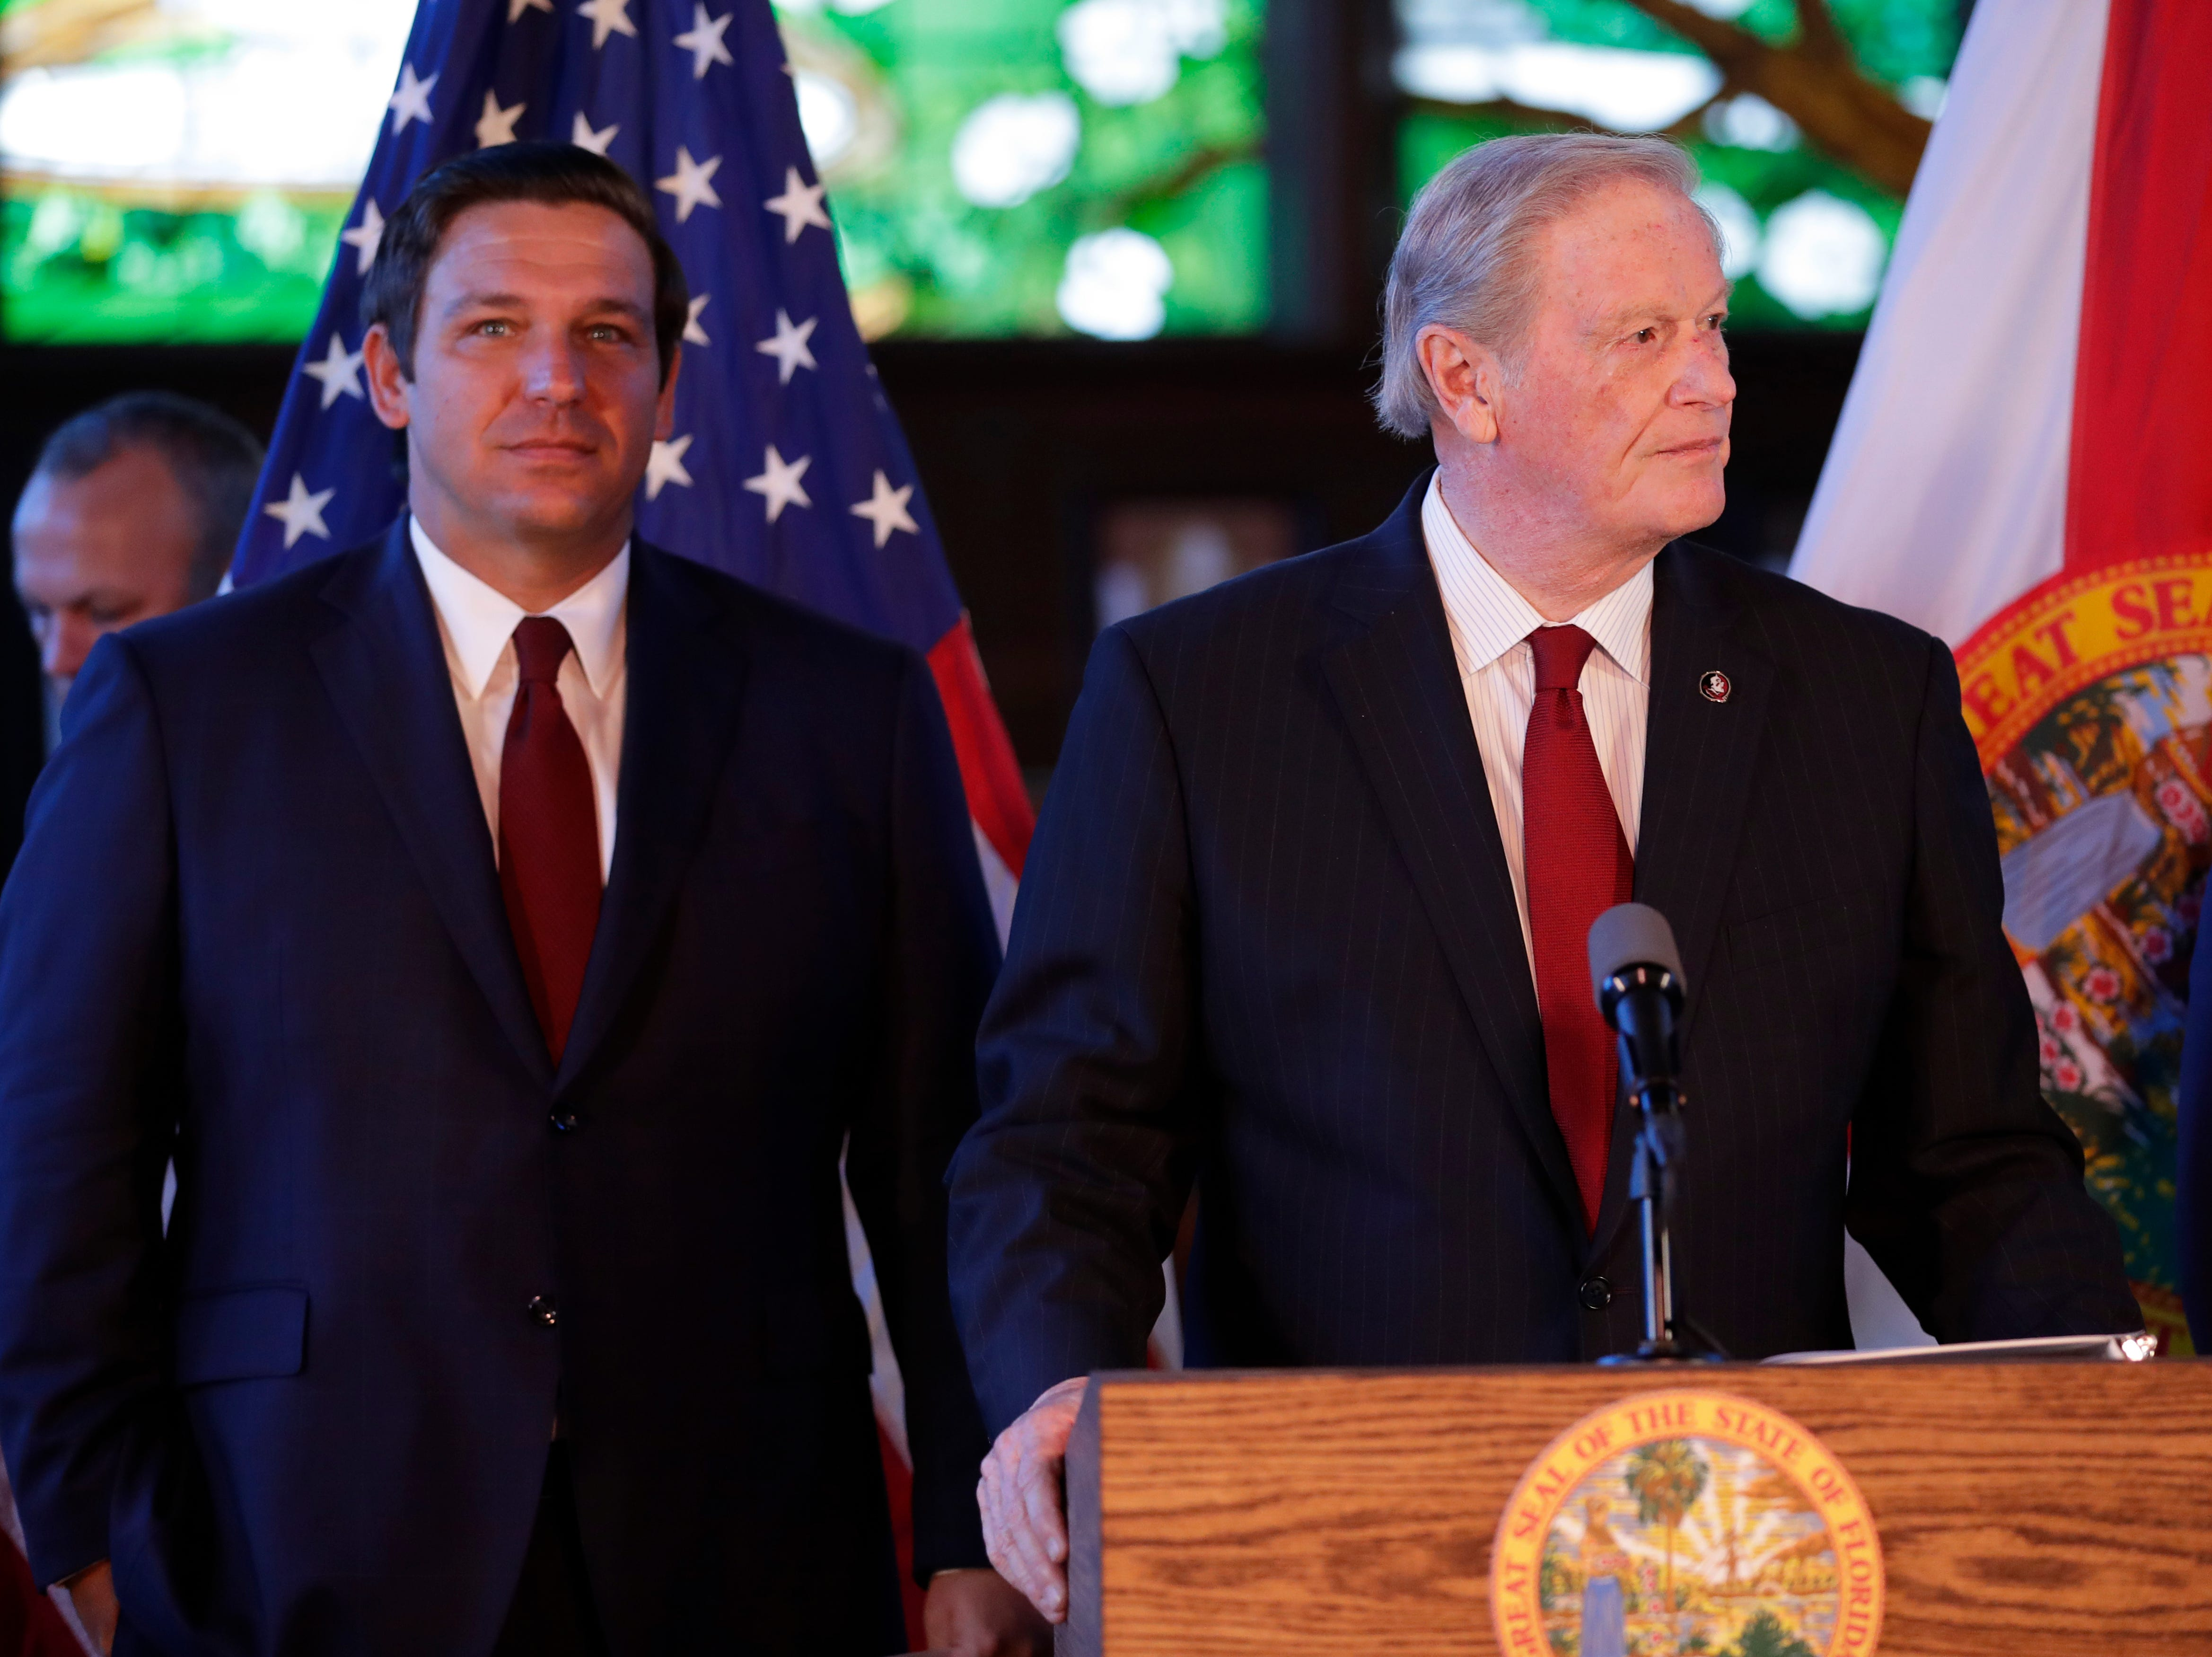 Florida State University President John Thrasher introduces Gov. Ron DeSantis as the pair affirm free speech rights on all higher education campuses in the state of Florida in Dodd Hall at FSU Monday, April 15, 2019.